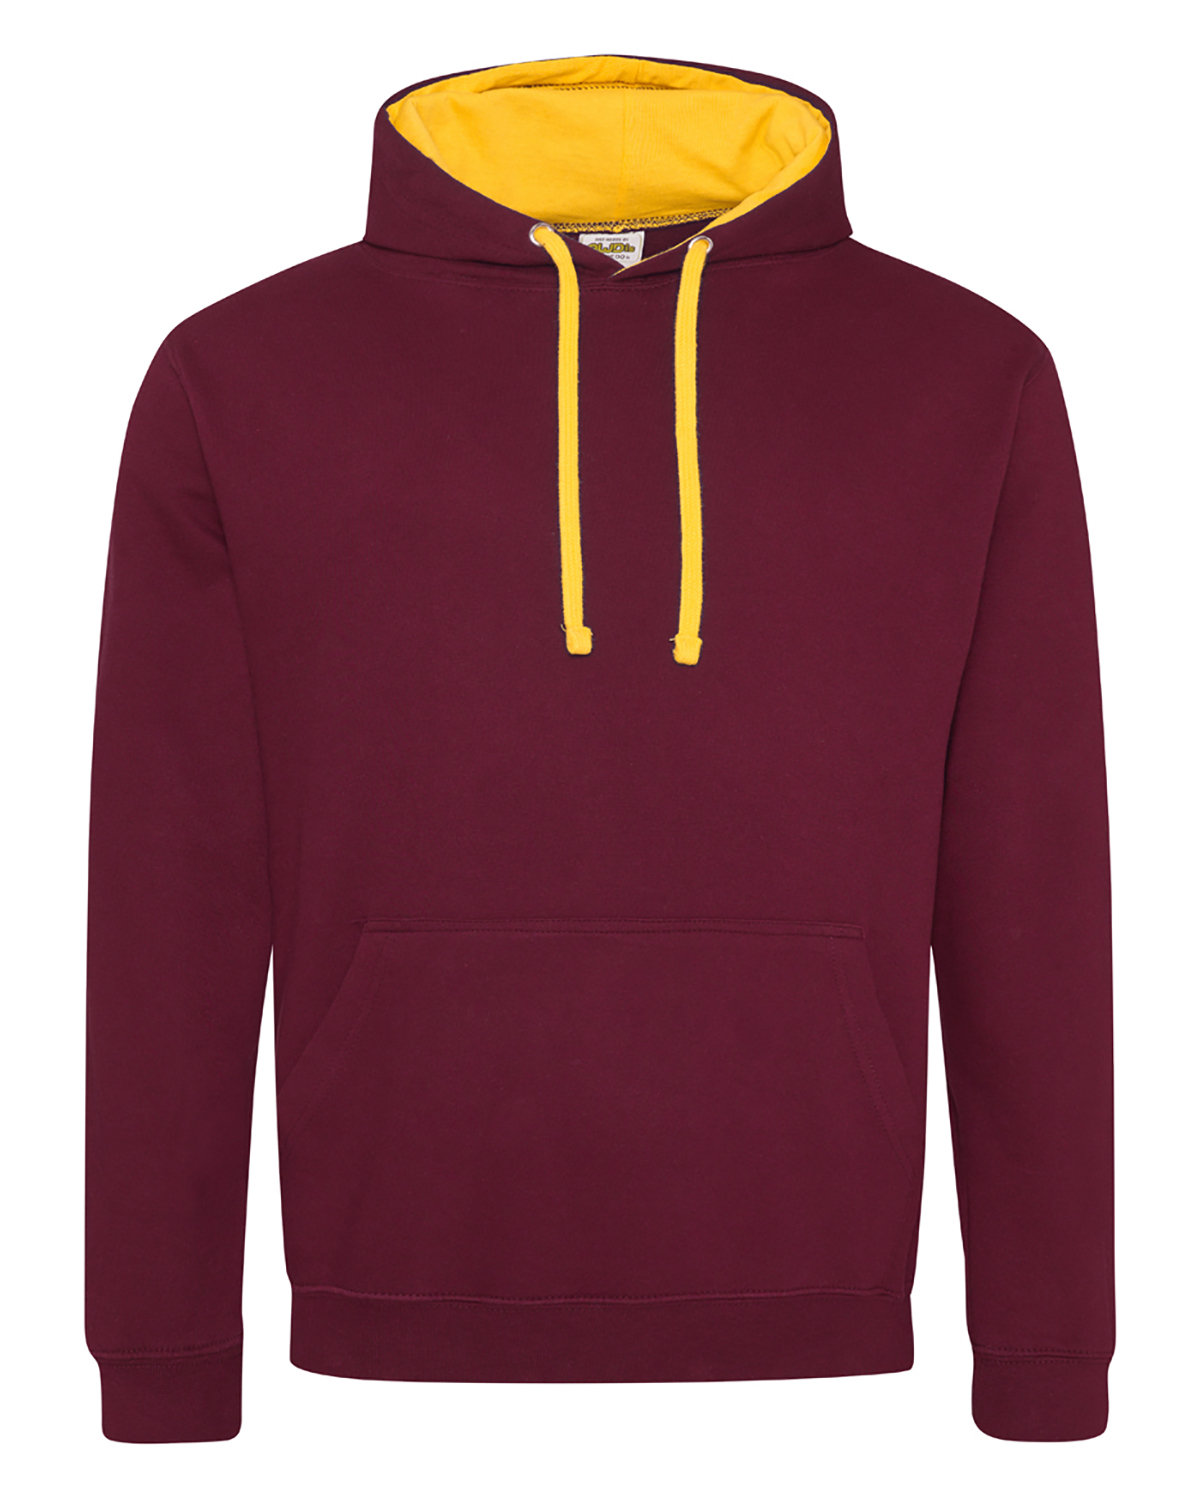 Just Hoods By AWDis Adult 80/20 Midweight Varsity Contrast Hooded Sweatshirt BURGUNDY/ GOLD